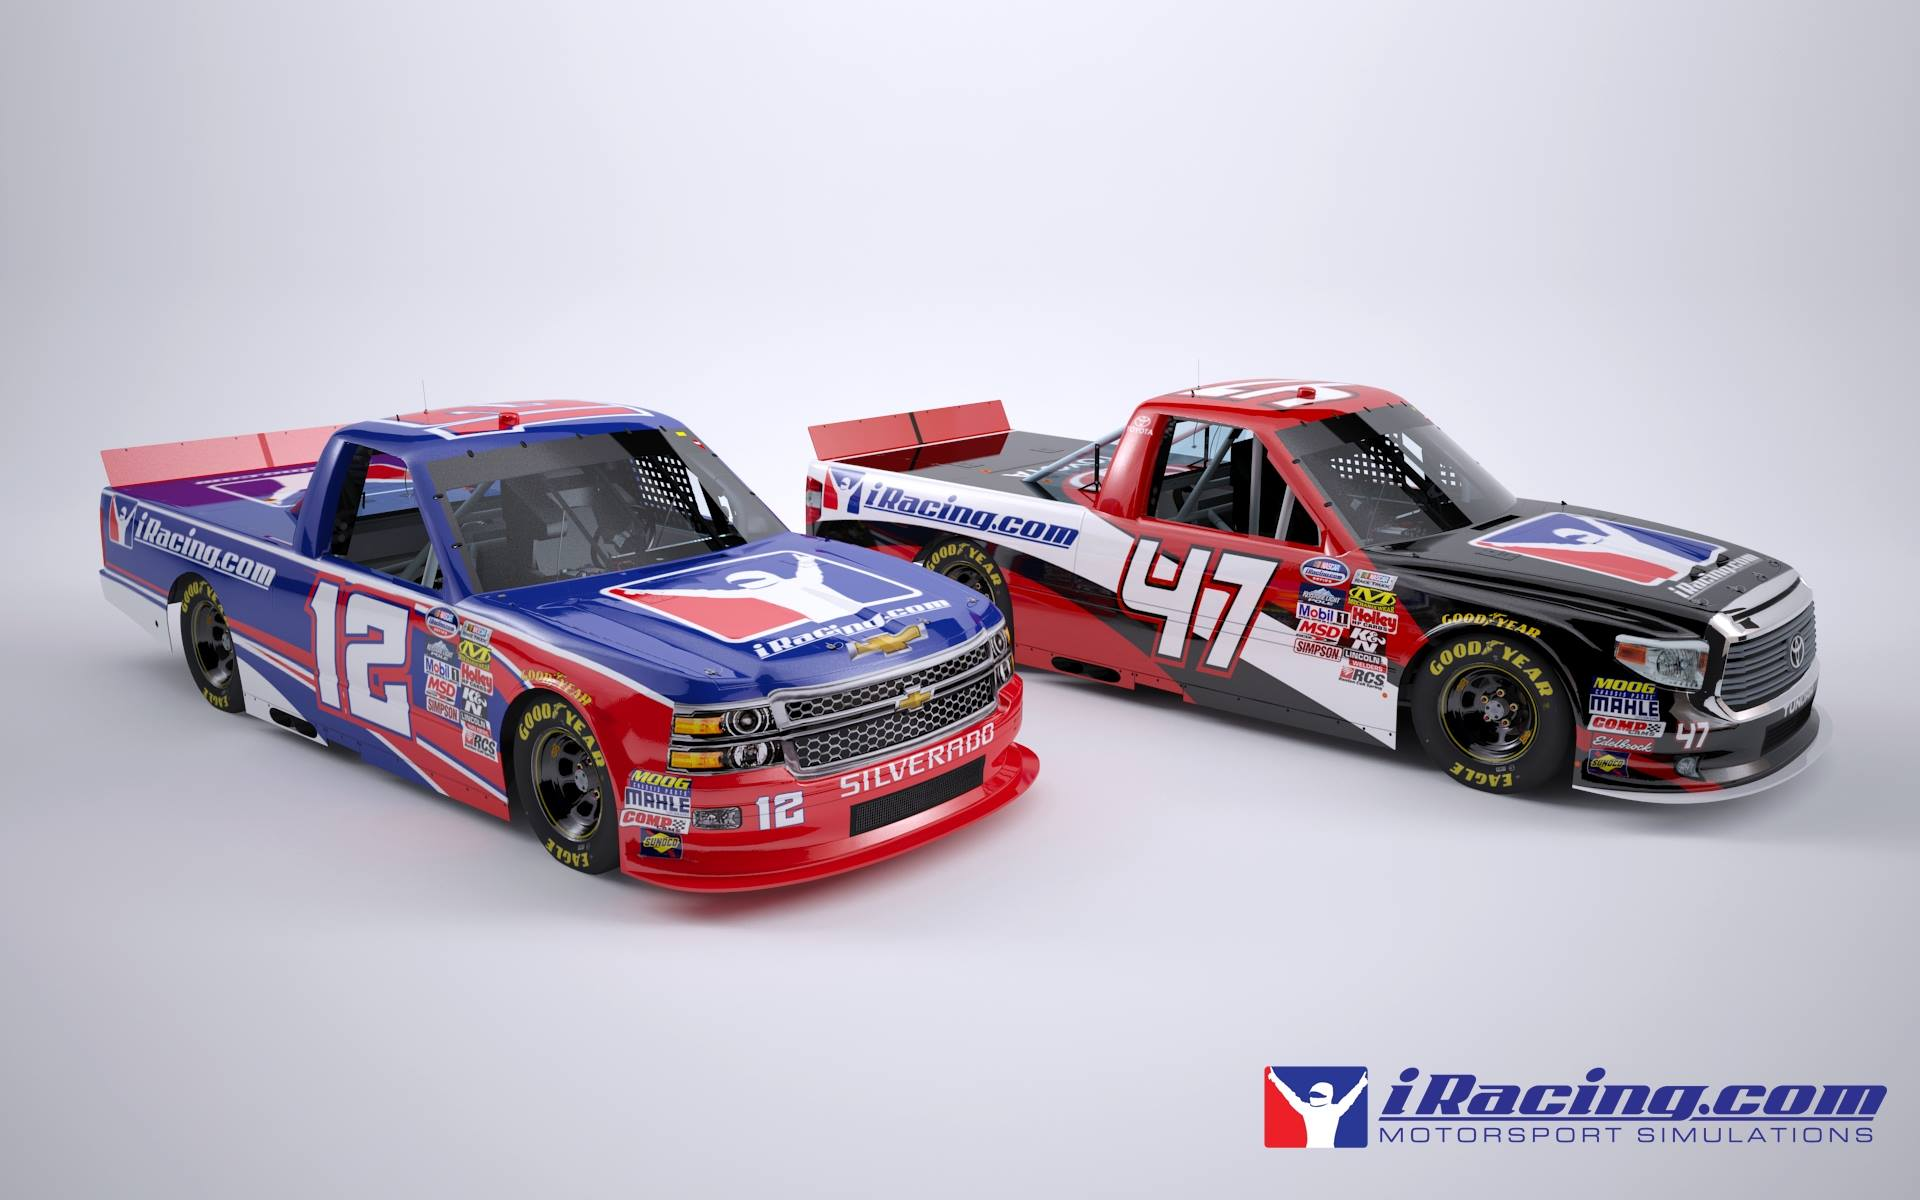 Monza and updated NASCAR trucks now available in iRacing